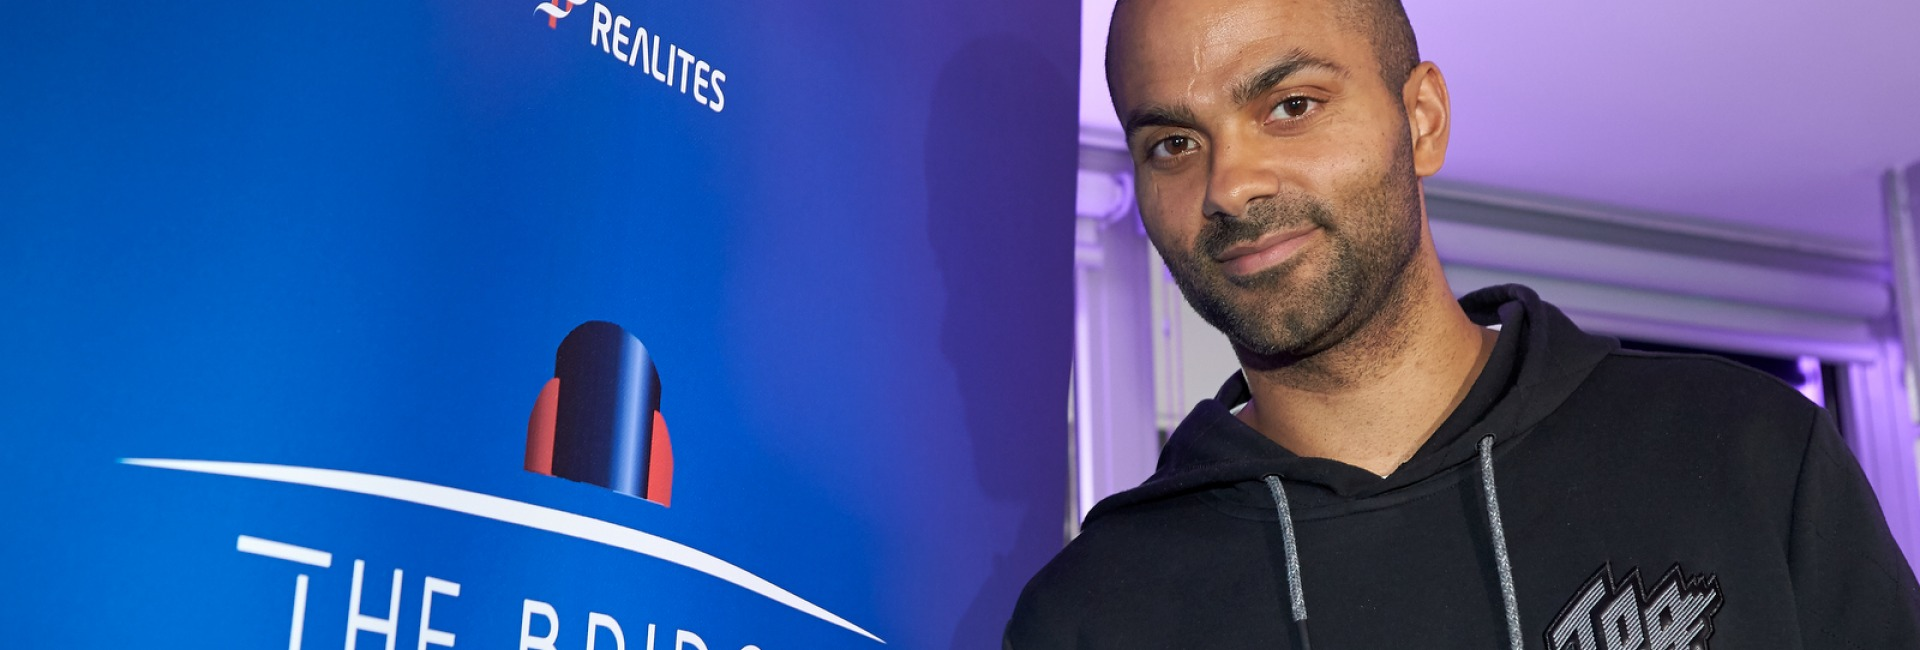 Tony Parker : basketteur, entrepreneur et ambassadeur de THE BRIDGE